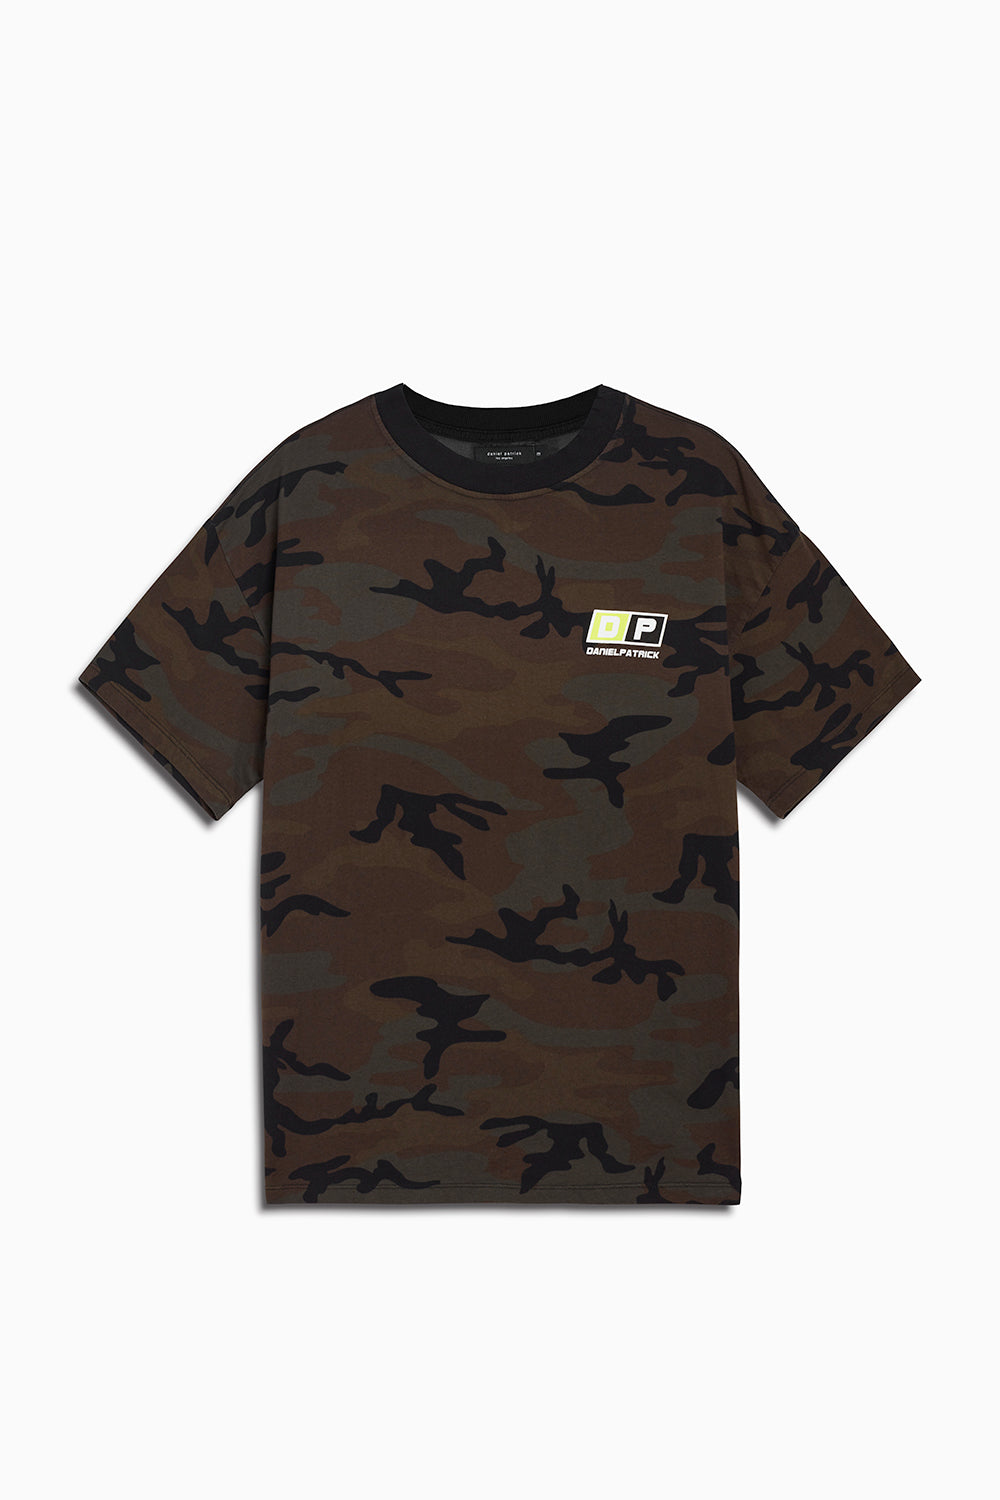 motorsport tee in camo/neon yellow by daniel patrick